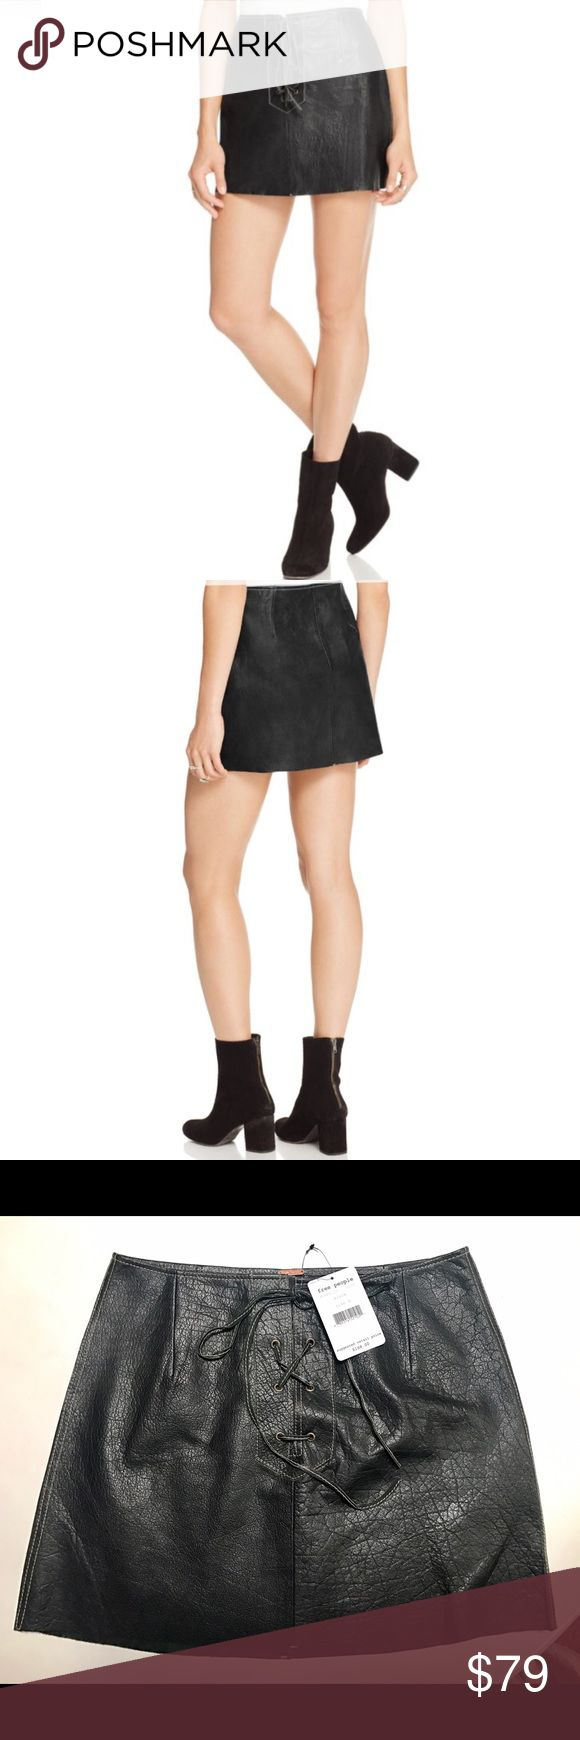 """Free People Join Hands Leather Skirt Trendy, lace-up styling endows Free People's lustrous leather mini skirt . Wear yours with a concert tee or a slouchy boyfriend sweater for a double-dose of downtown cool. Leather Professional leather clean Fits true to size, order your normal size Designed for a contemporary fit Lace-up front, contrast stitching, darted Approx. 14.5"""" from back of waist to hem, based on a size 4 Free People Skirts Mini"""